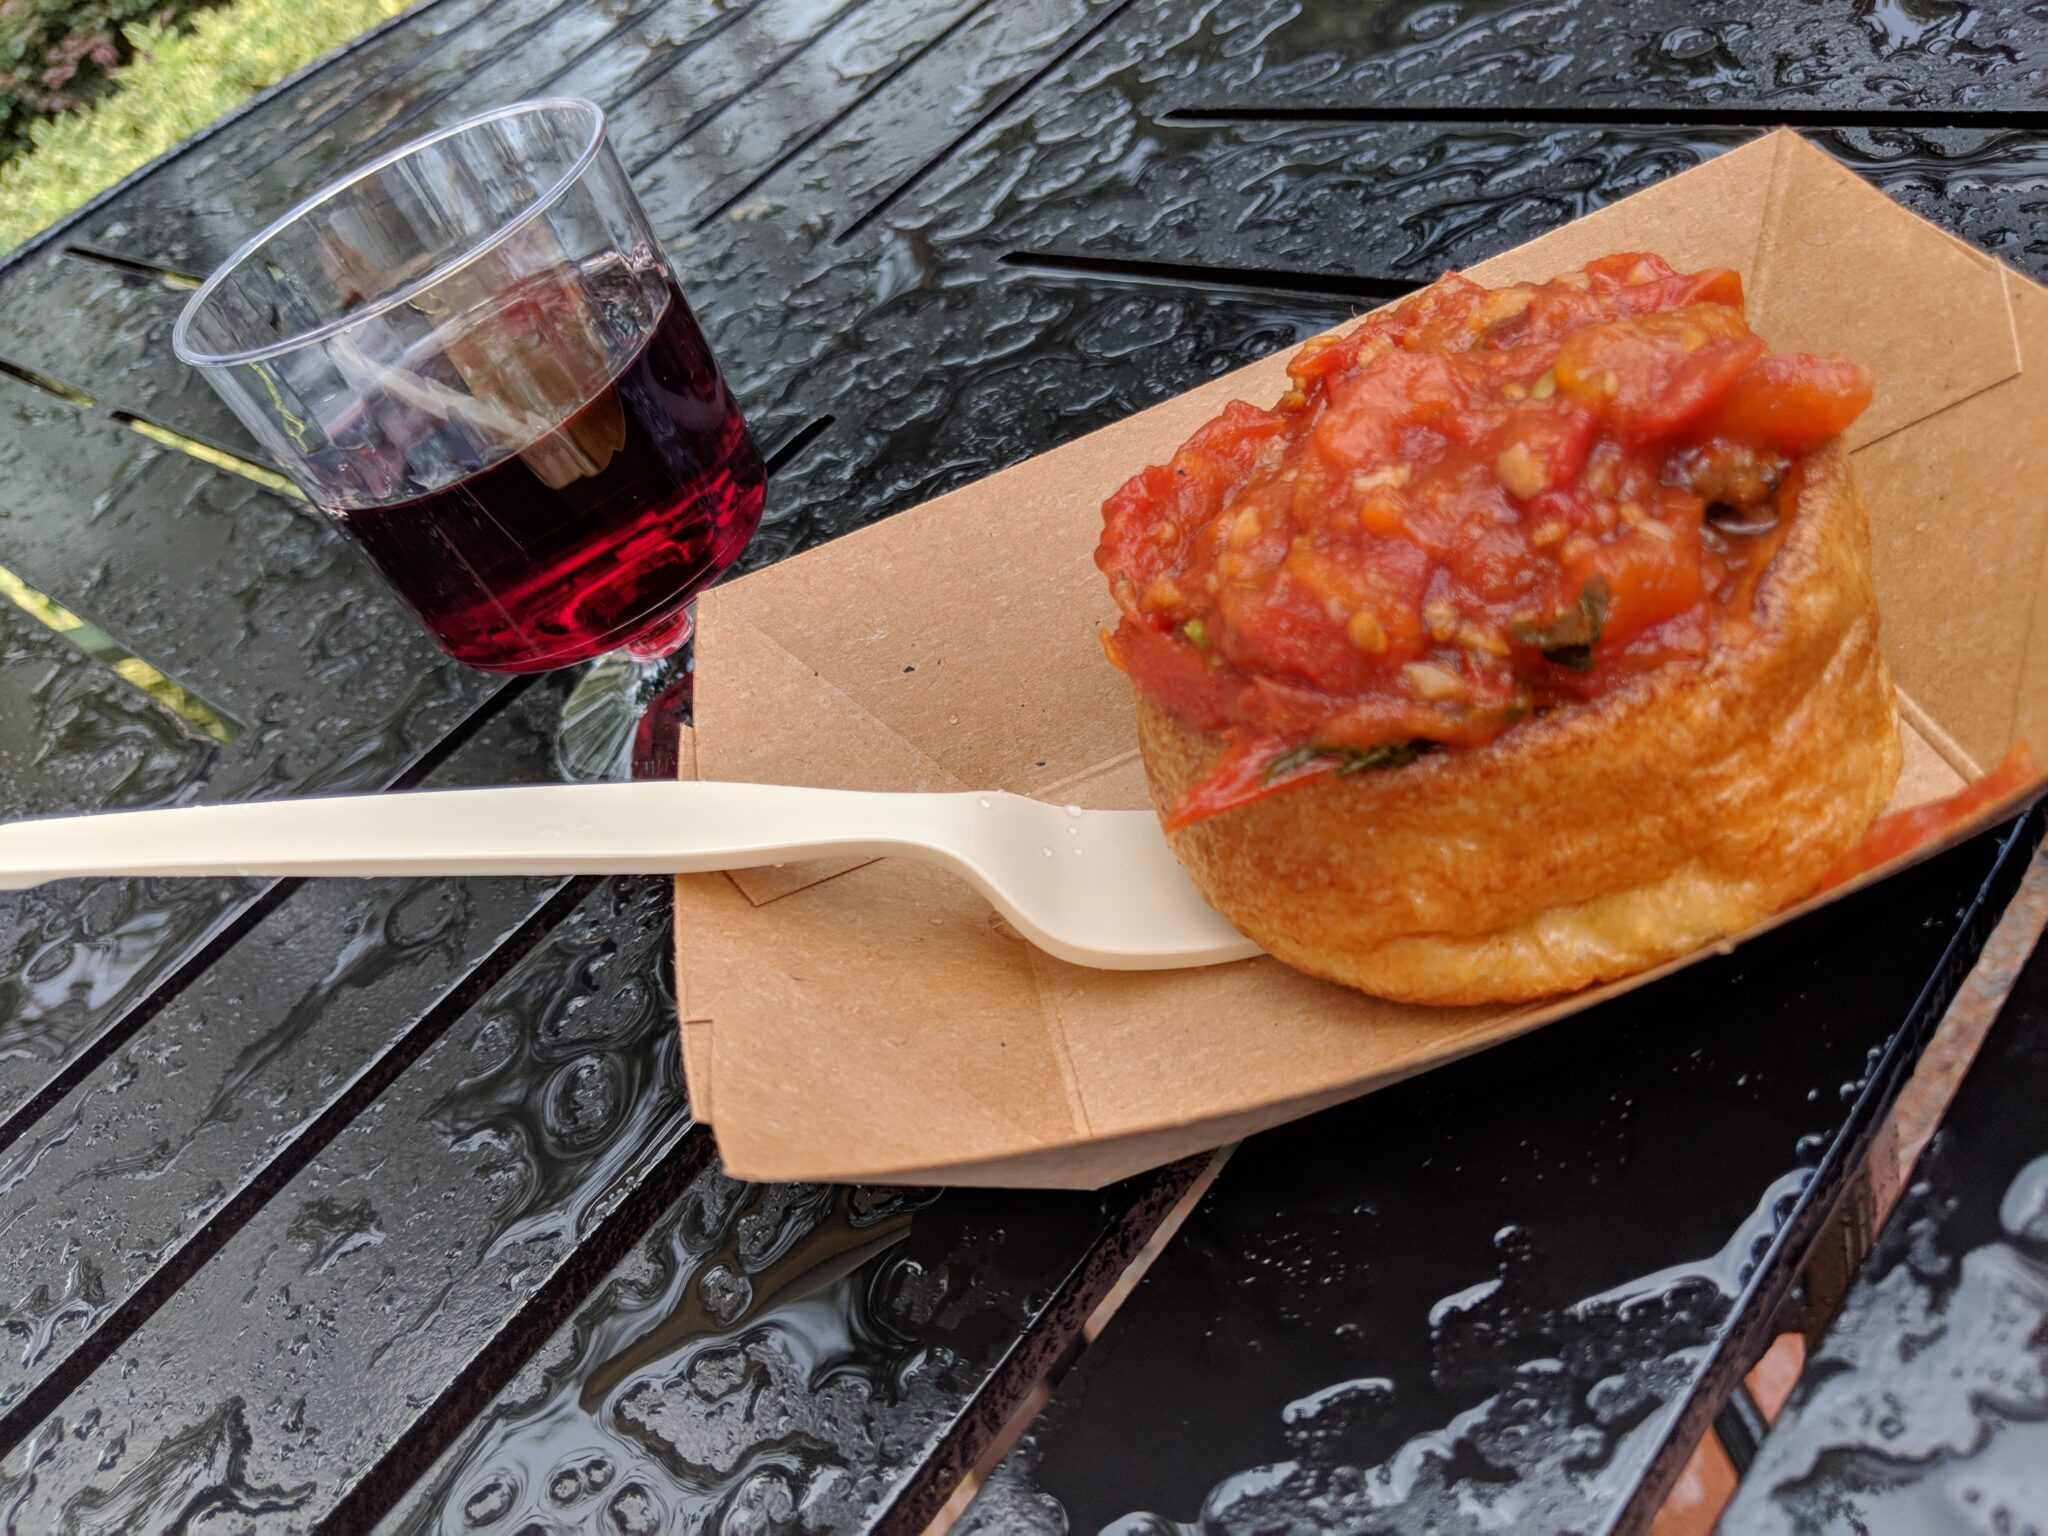 Try the New Zealand lamb meatball when visiting Epcot Food & Wine on a budget.